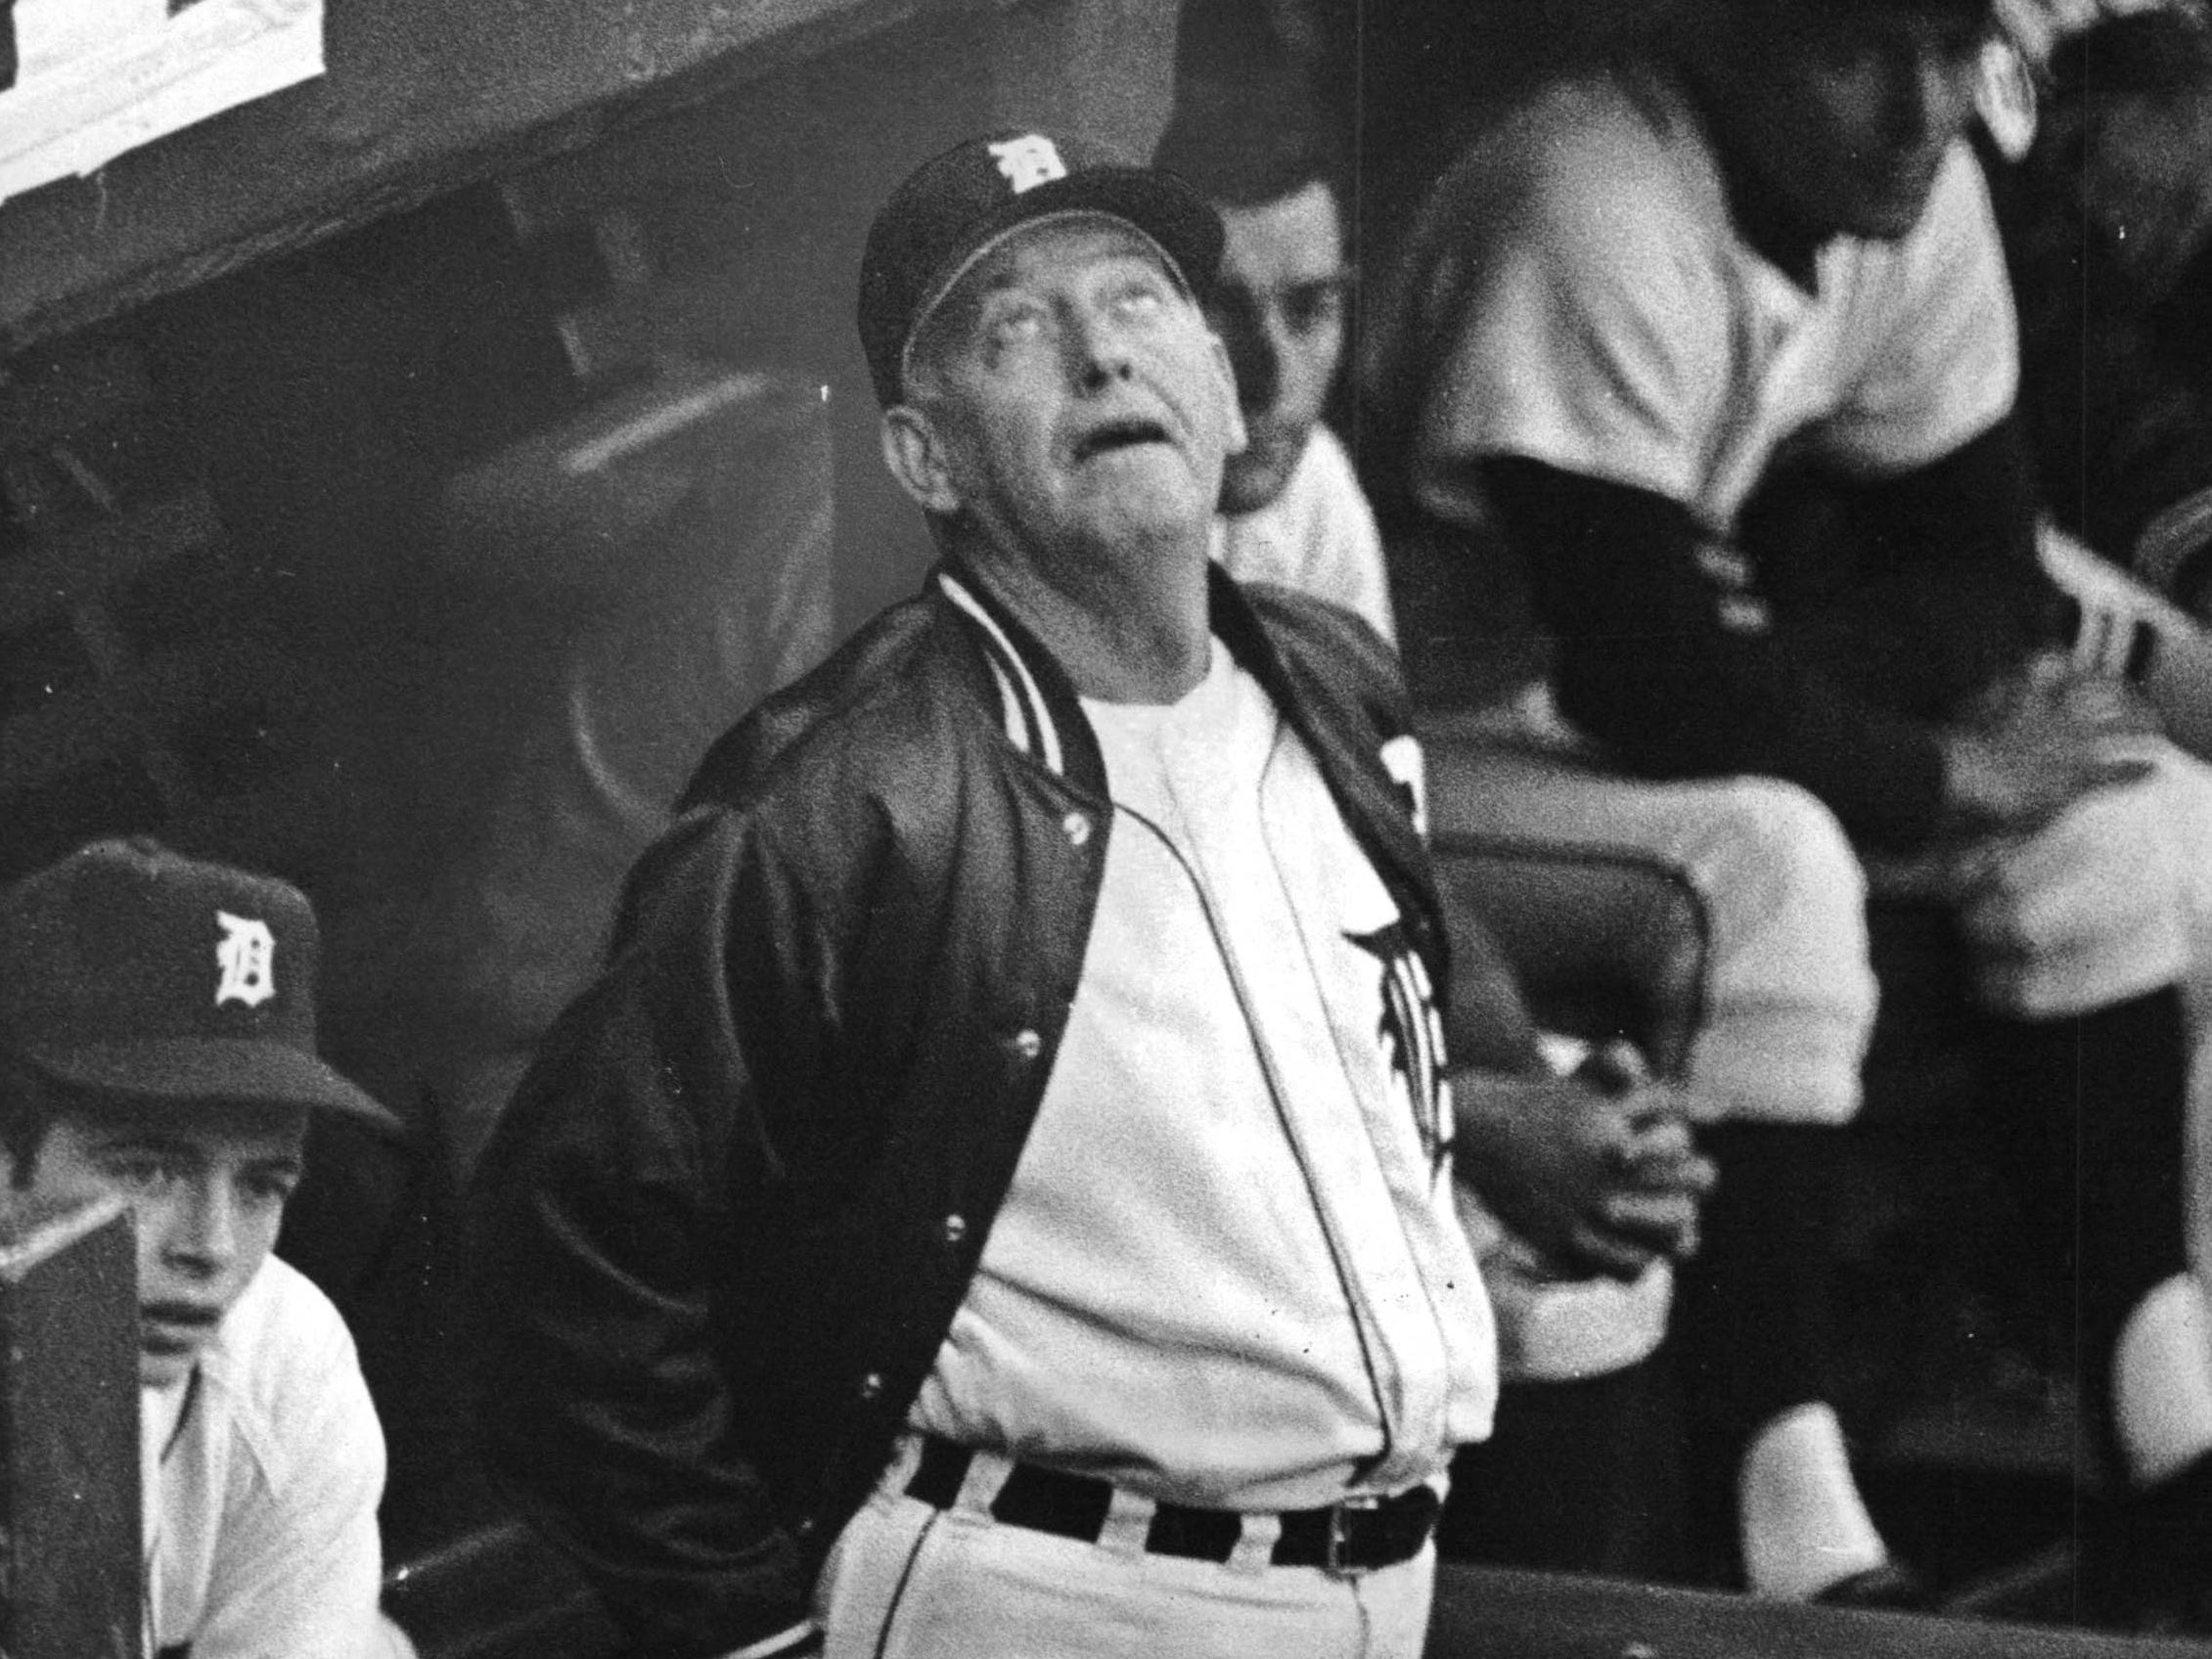 Detroit Tigers Manager Mayo Smith looks like he might be crying a little as his Tigers take a 7-3 whipping from the Cardinals and fall behind in the World Series.